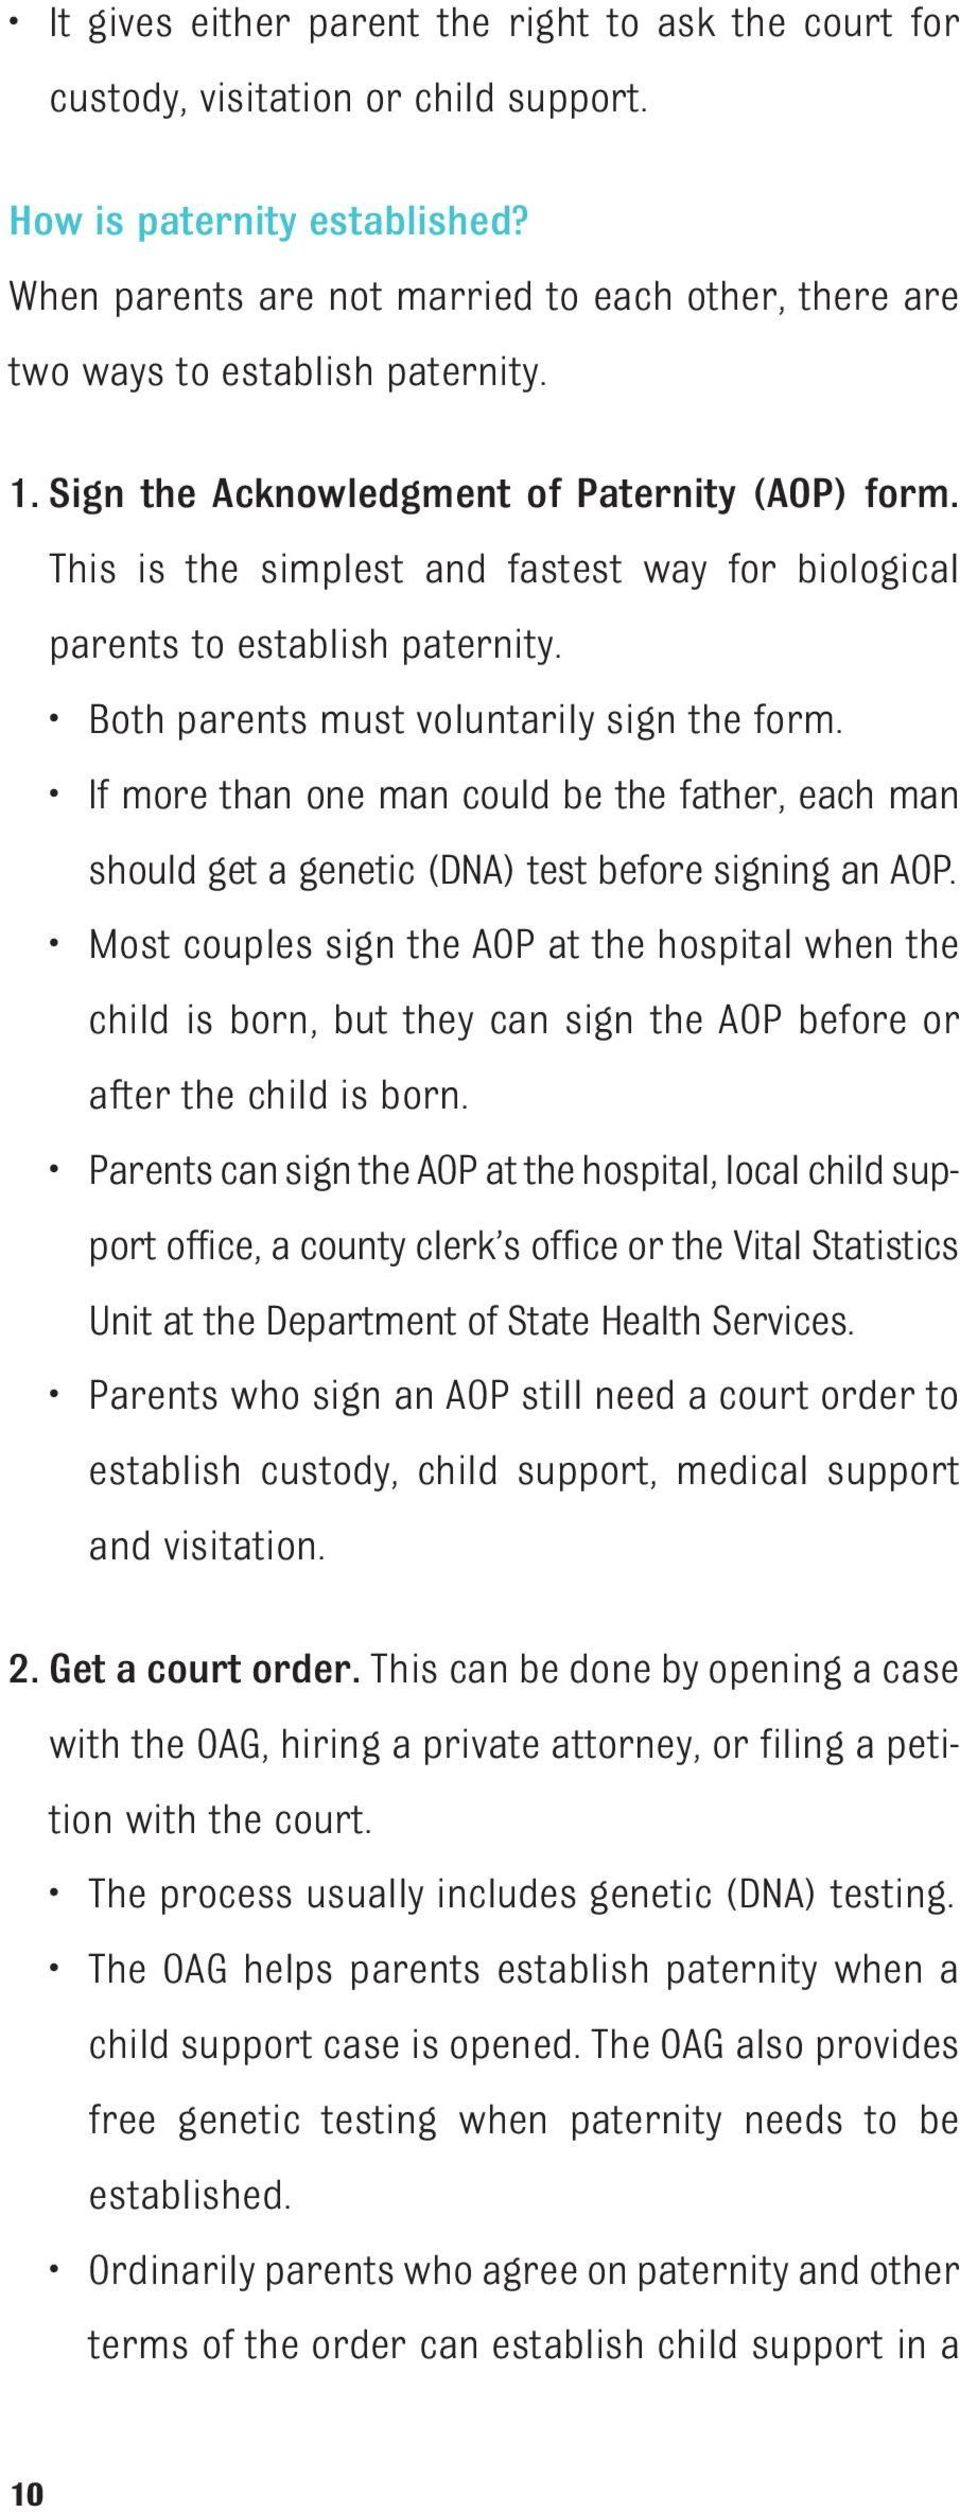 This is the simplest and fastest way for biological parents to establish paternity. Both parents must voluntarily sign the form.